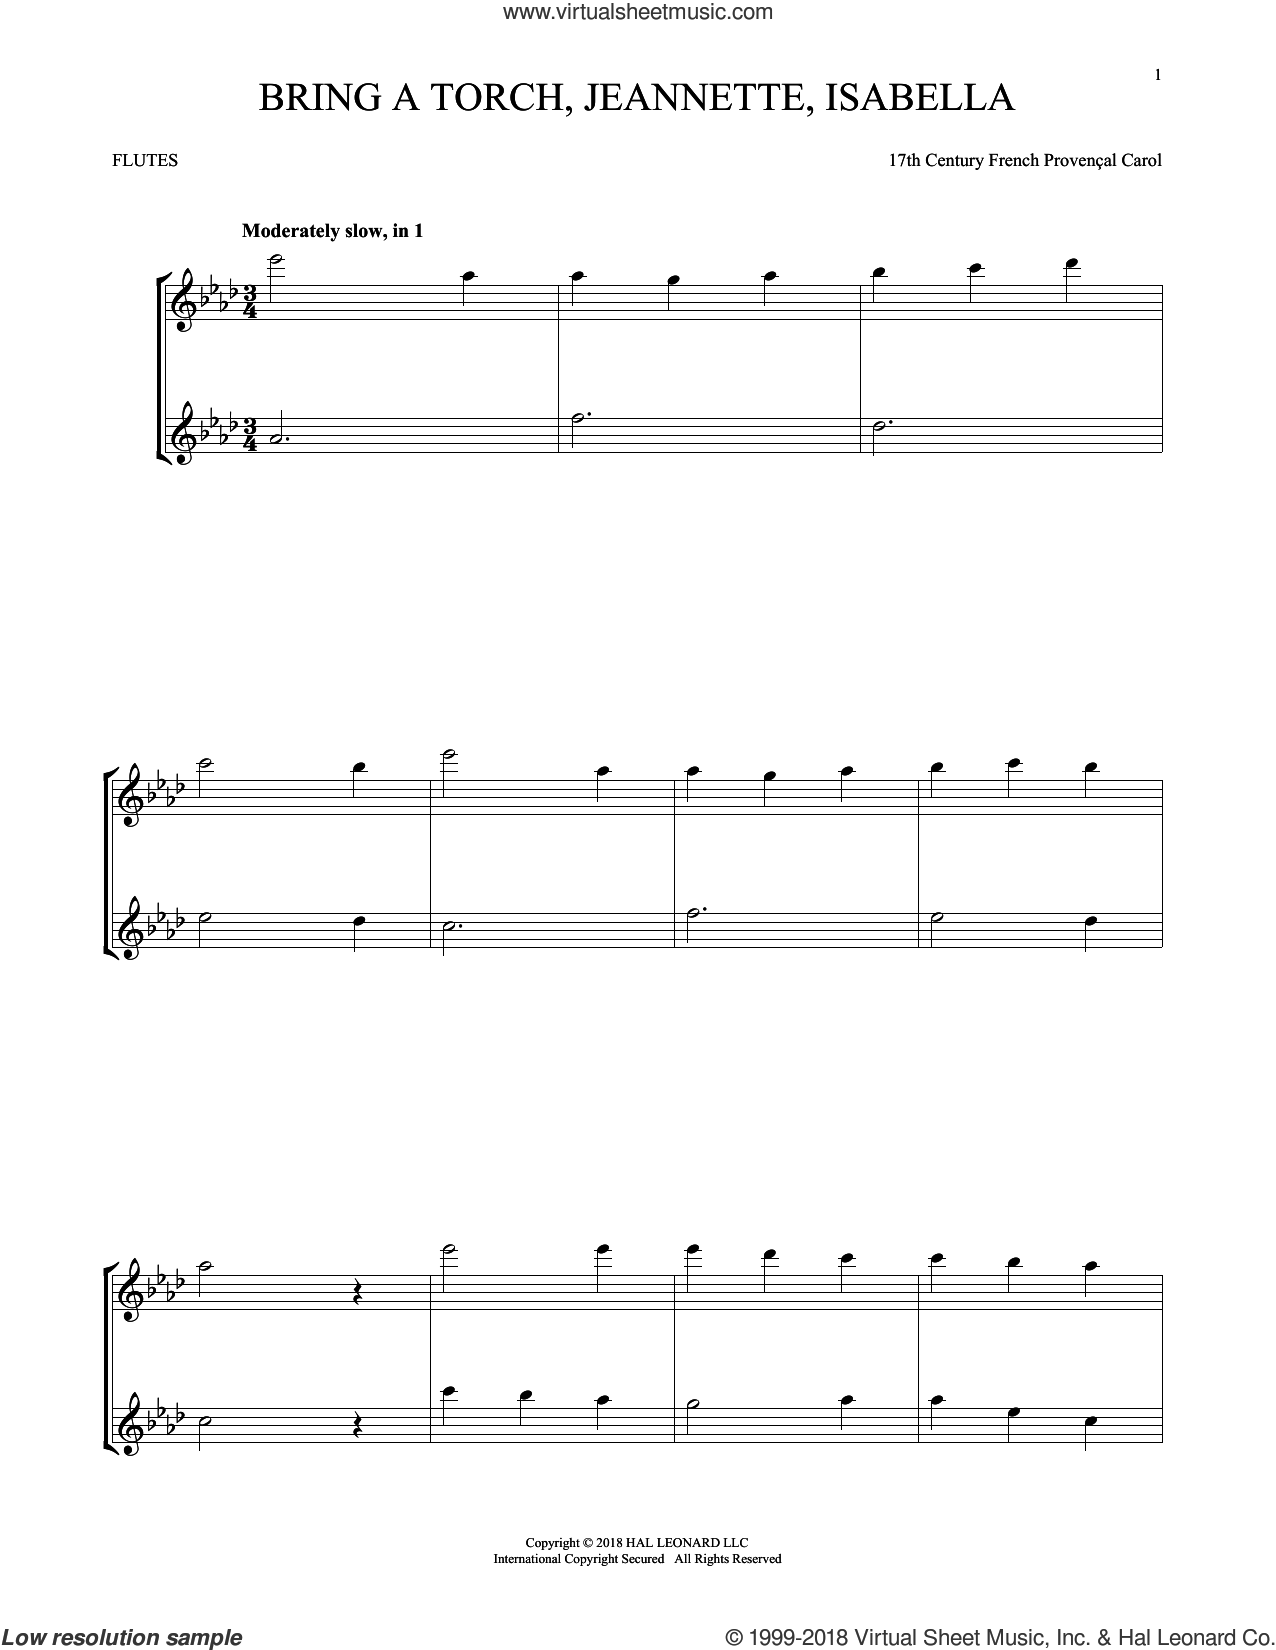 Bring A Torch, Jeannette, Isabella sheet music for two flutes (duets) by Anonymous and Miscellaneous, intermediate skill level